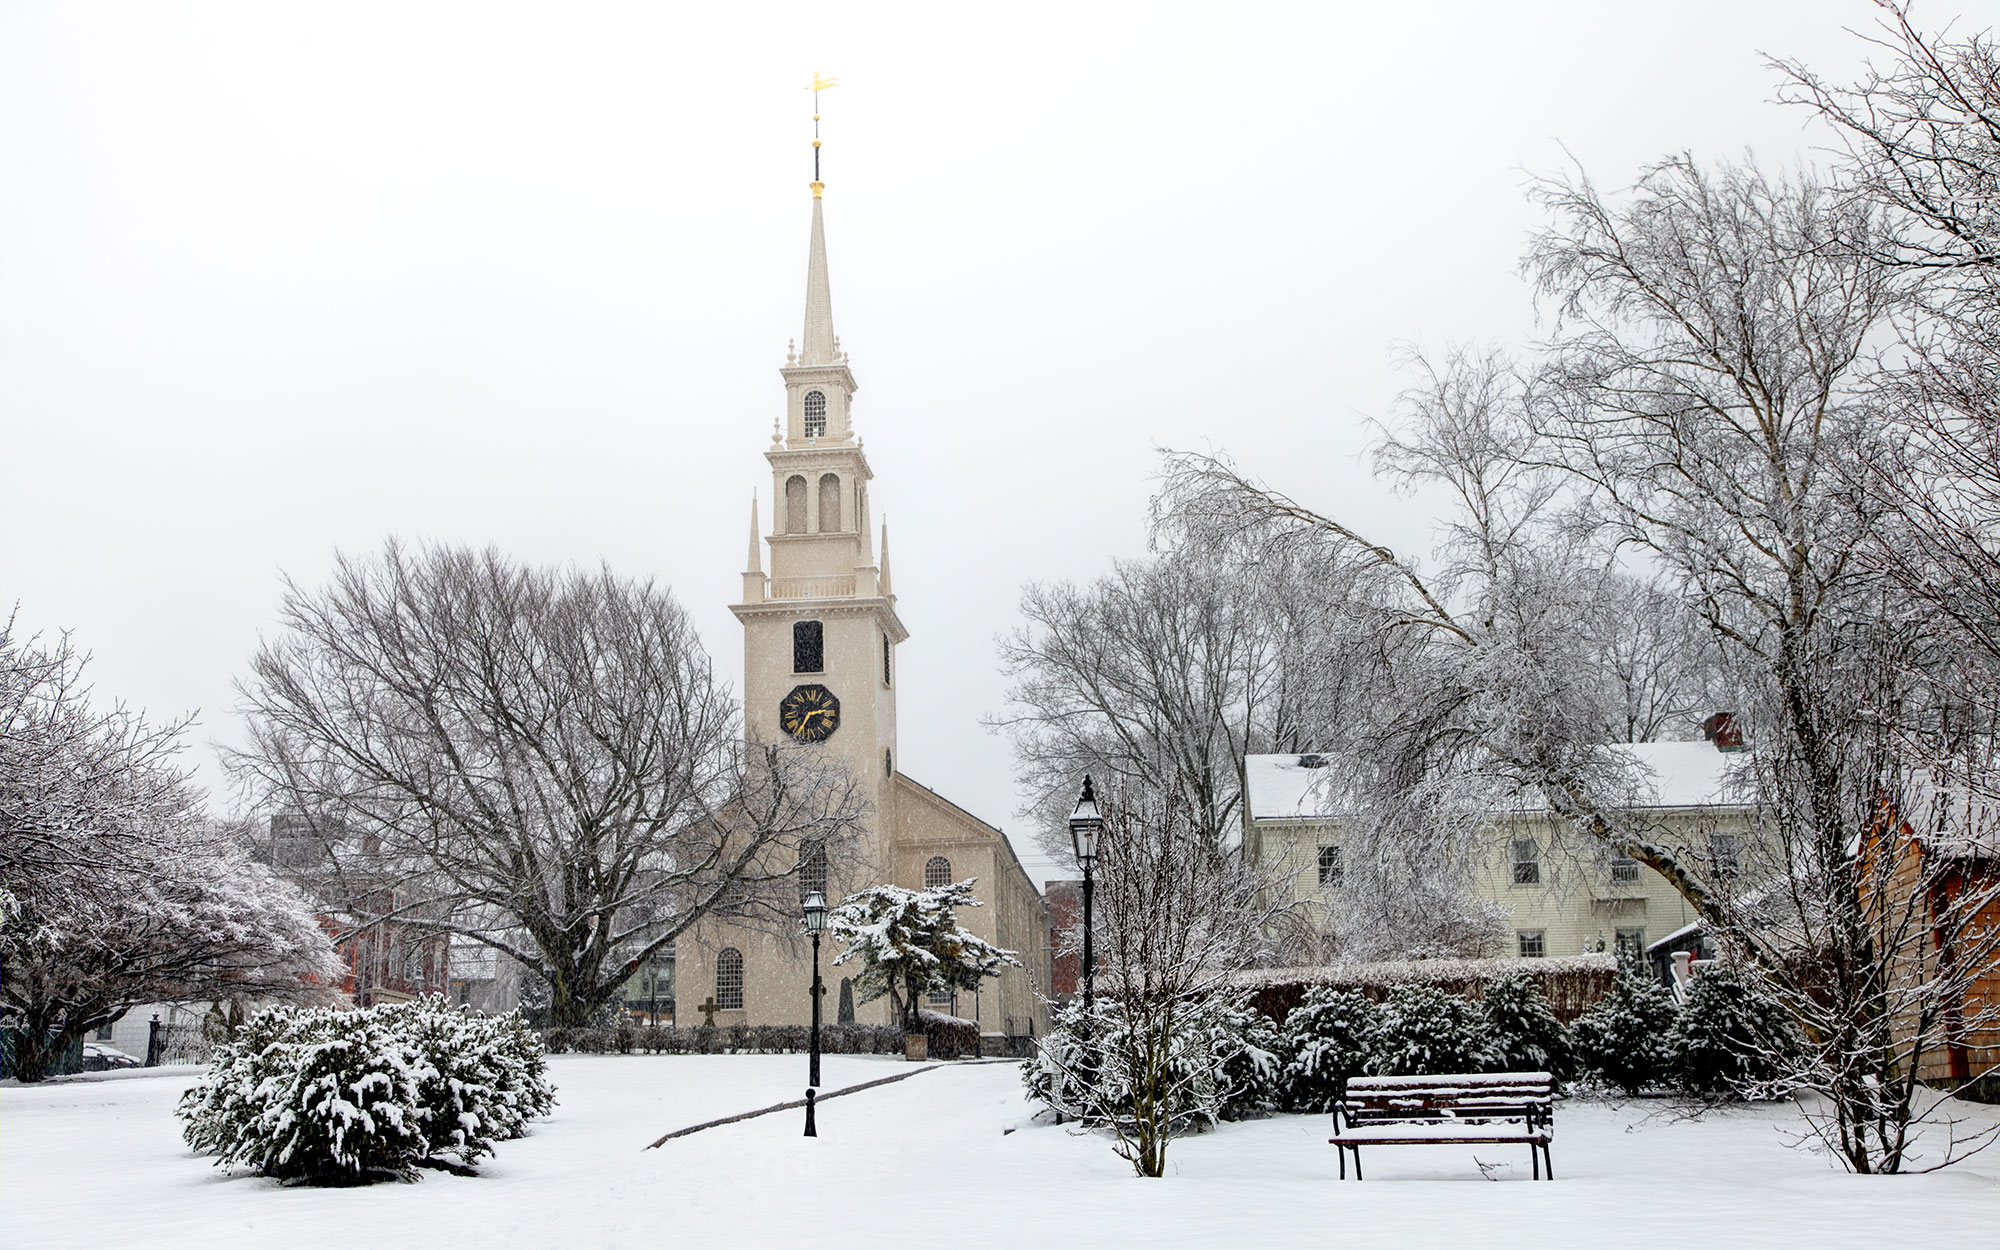 Things to do in Newport, Rhode Island in Winter